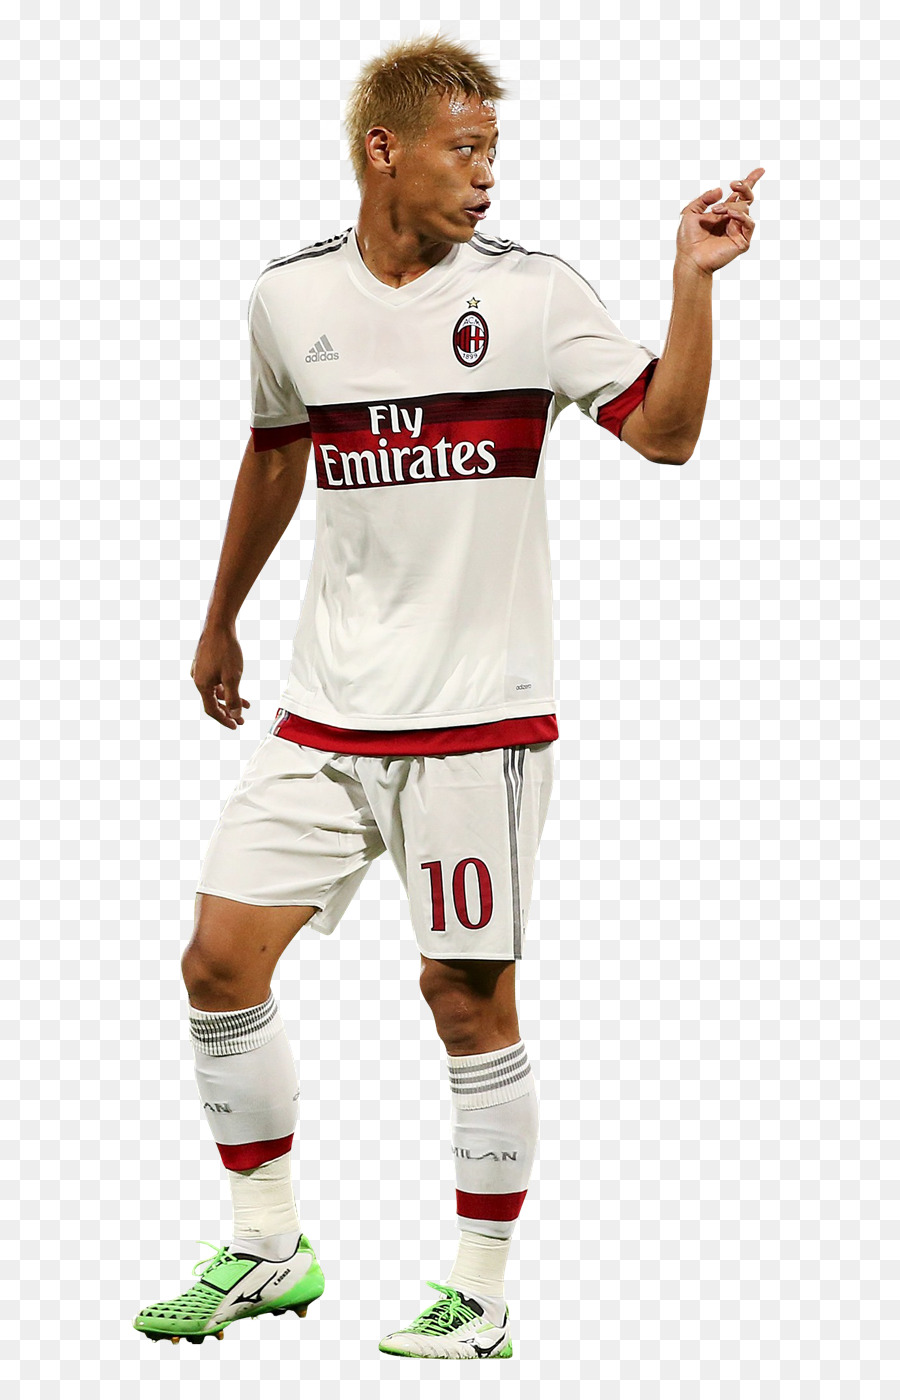 39a8d0e13 Keisuke Honda Jersey A.C. Milan C.F. Pachuca Soccer player - Japan football  png download - 691 1400 - Free Transparent Keisuke Honda png Download.